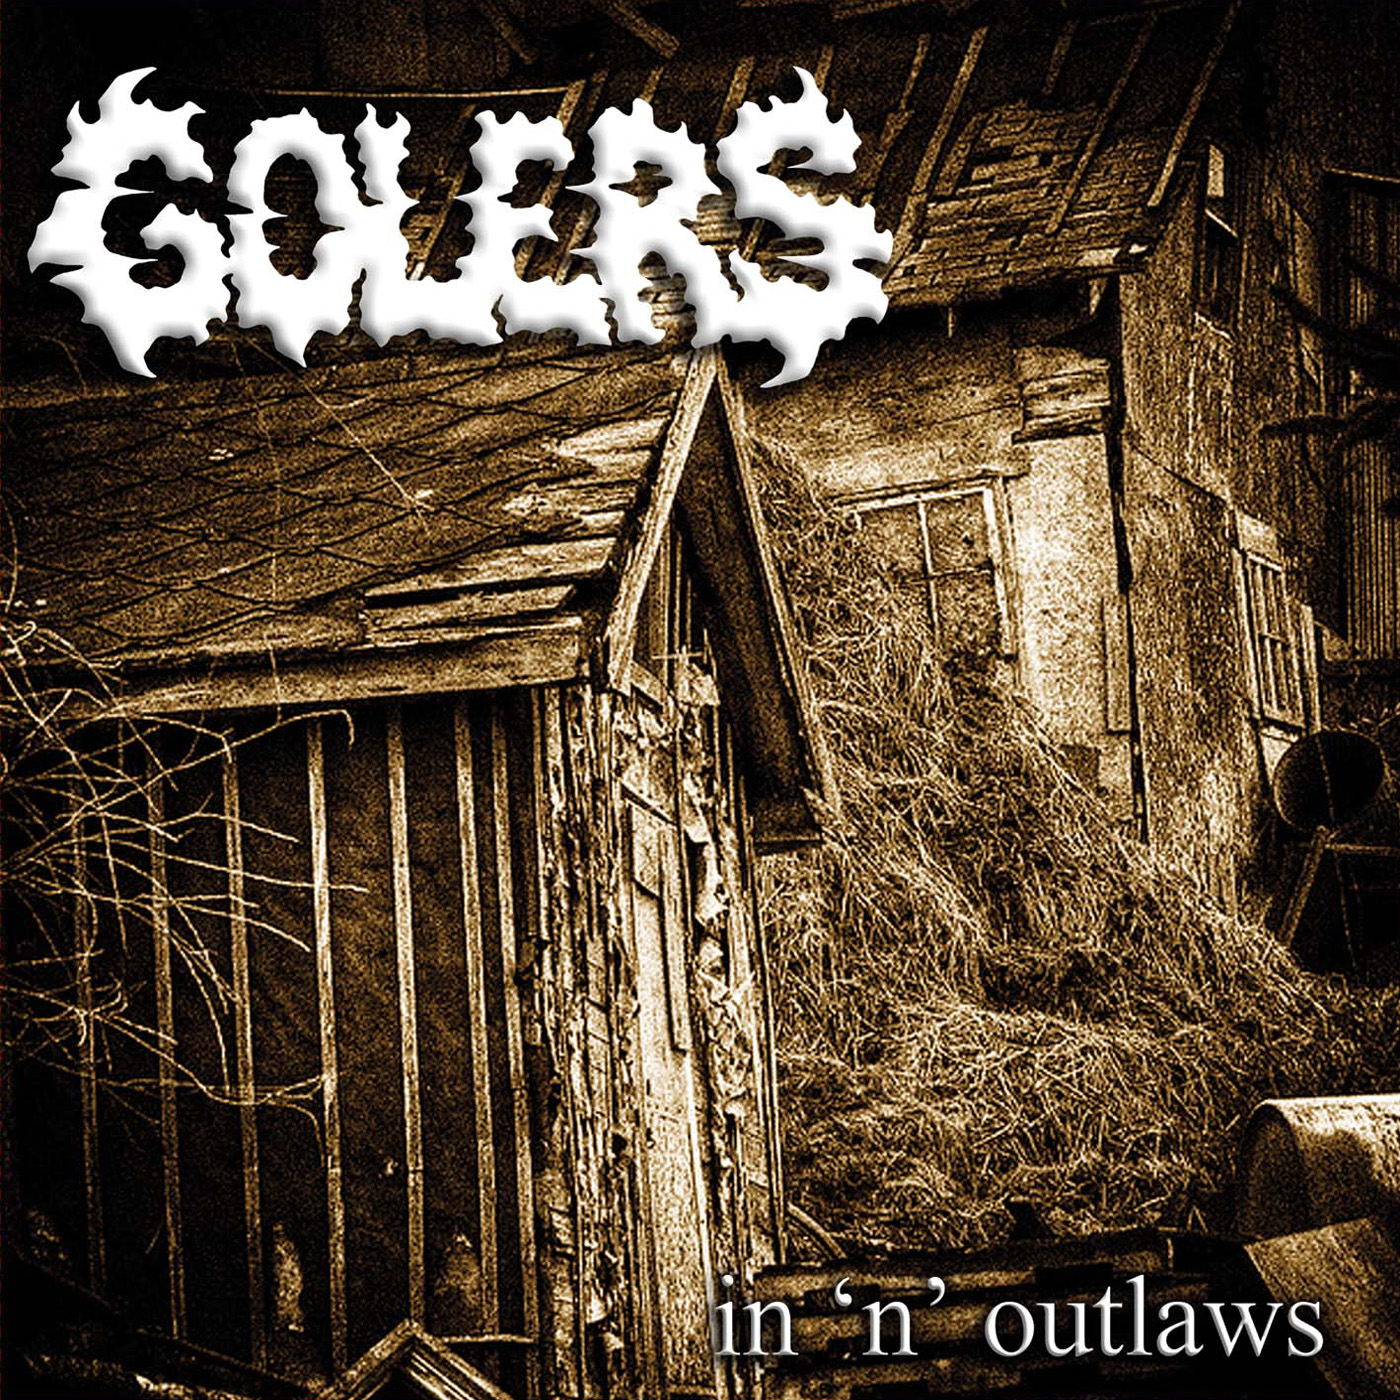 Golers - In 'n' Outlaws - 2013